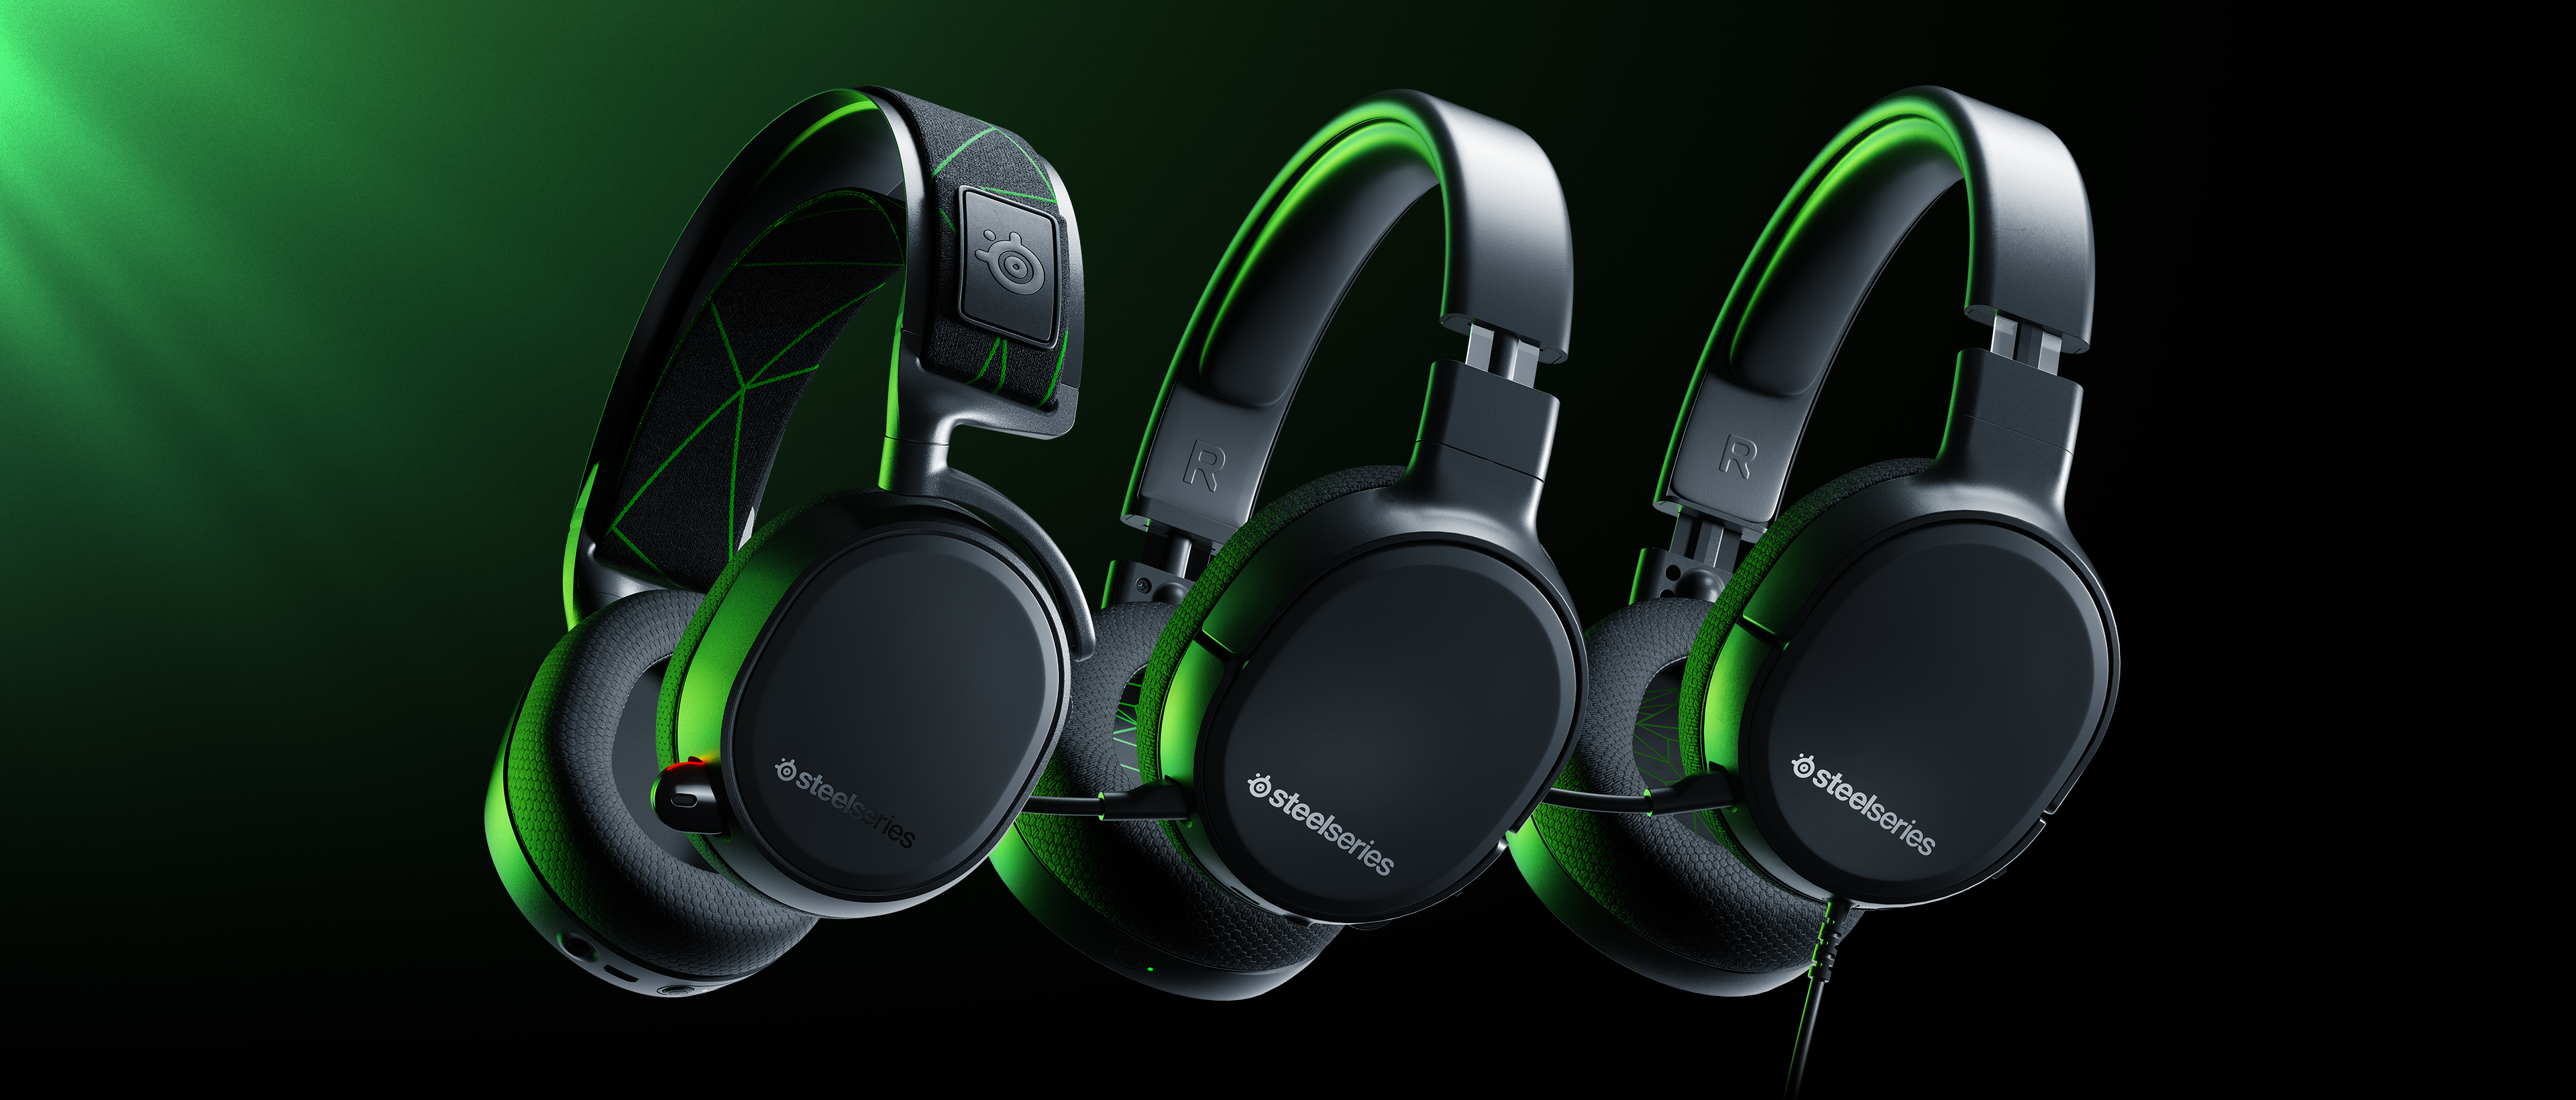 3 Arctis headset models that are compatible with Xbox floating in space